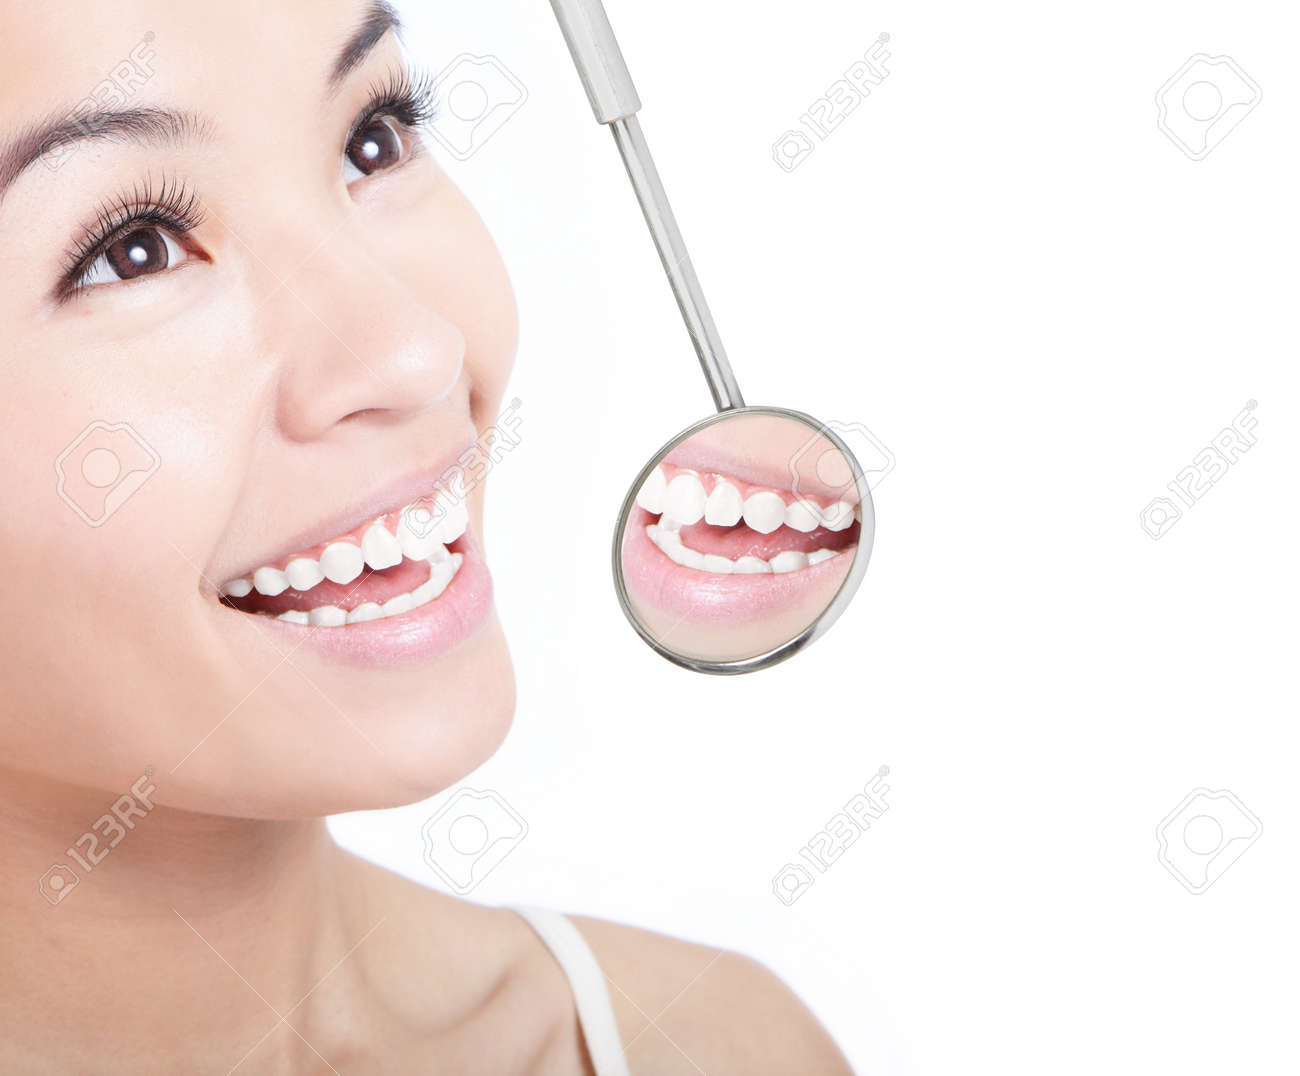 Healthy Woman Teeth And A Dentist Mouth Mirror Isolated On White  Background, Model Is A How To Become A Successful